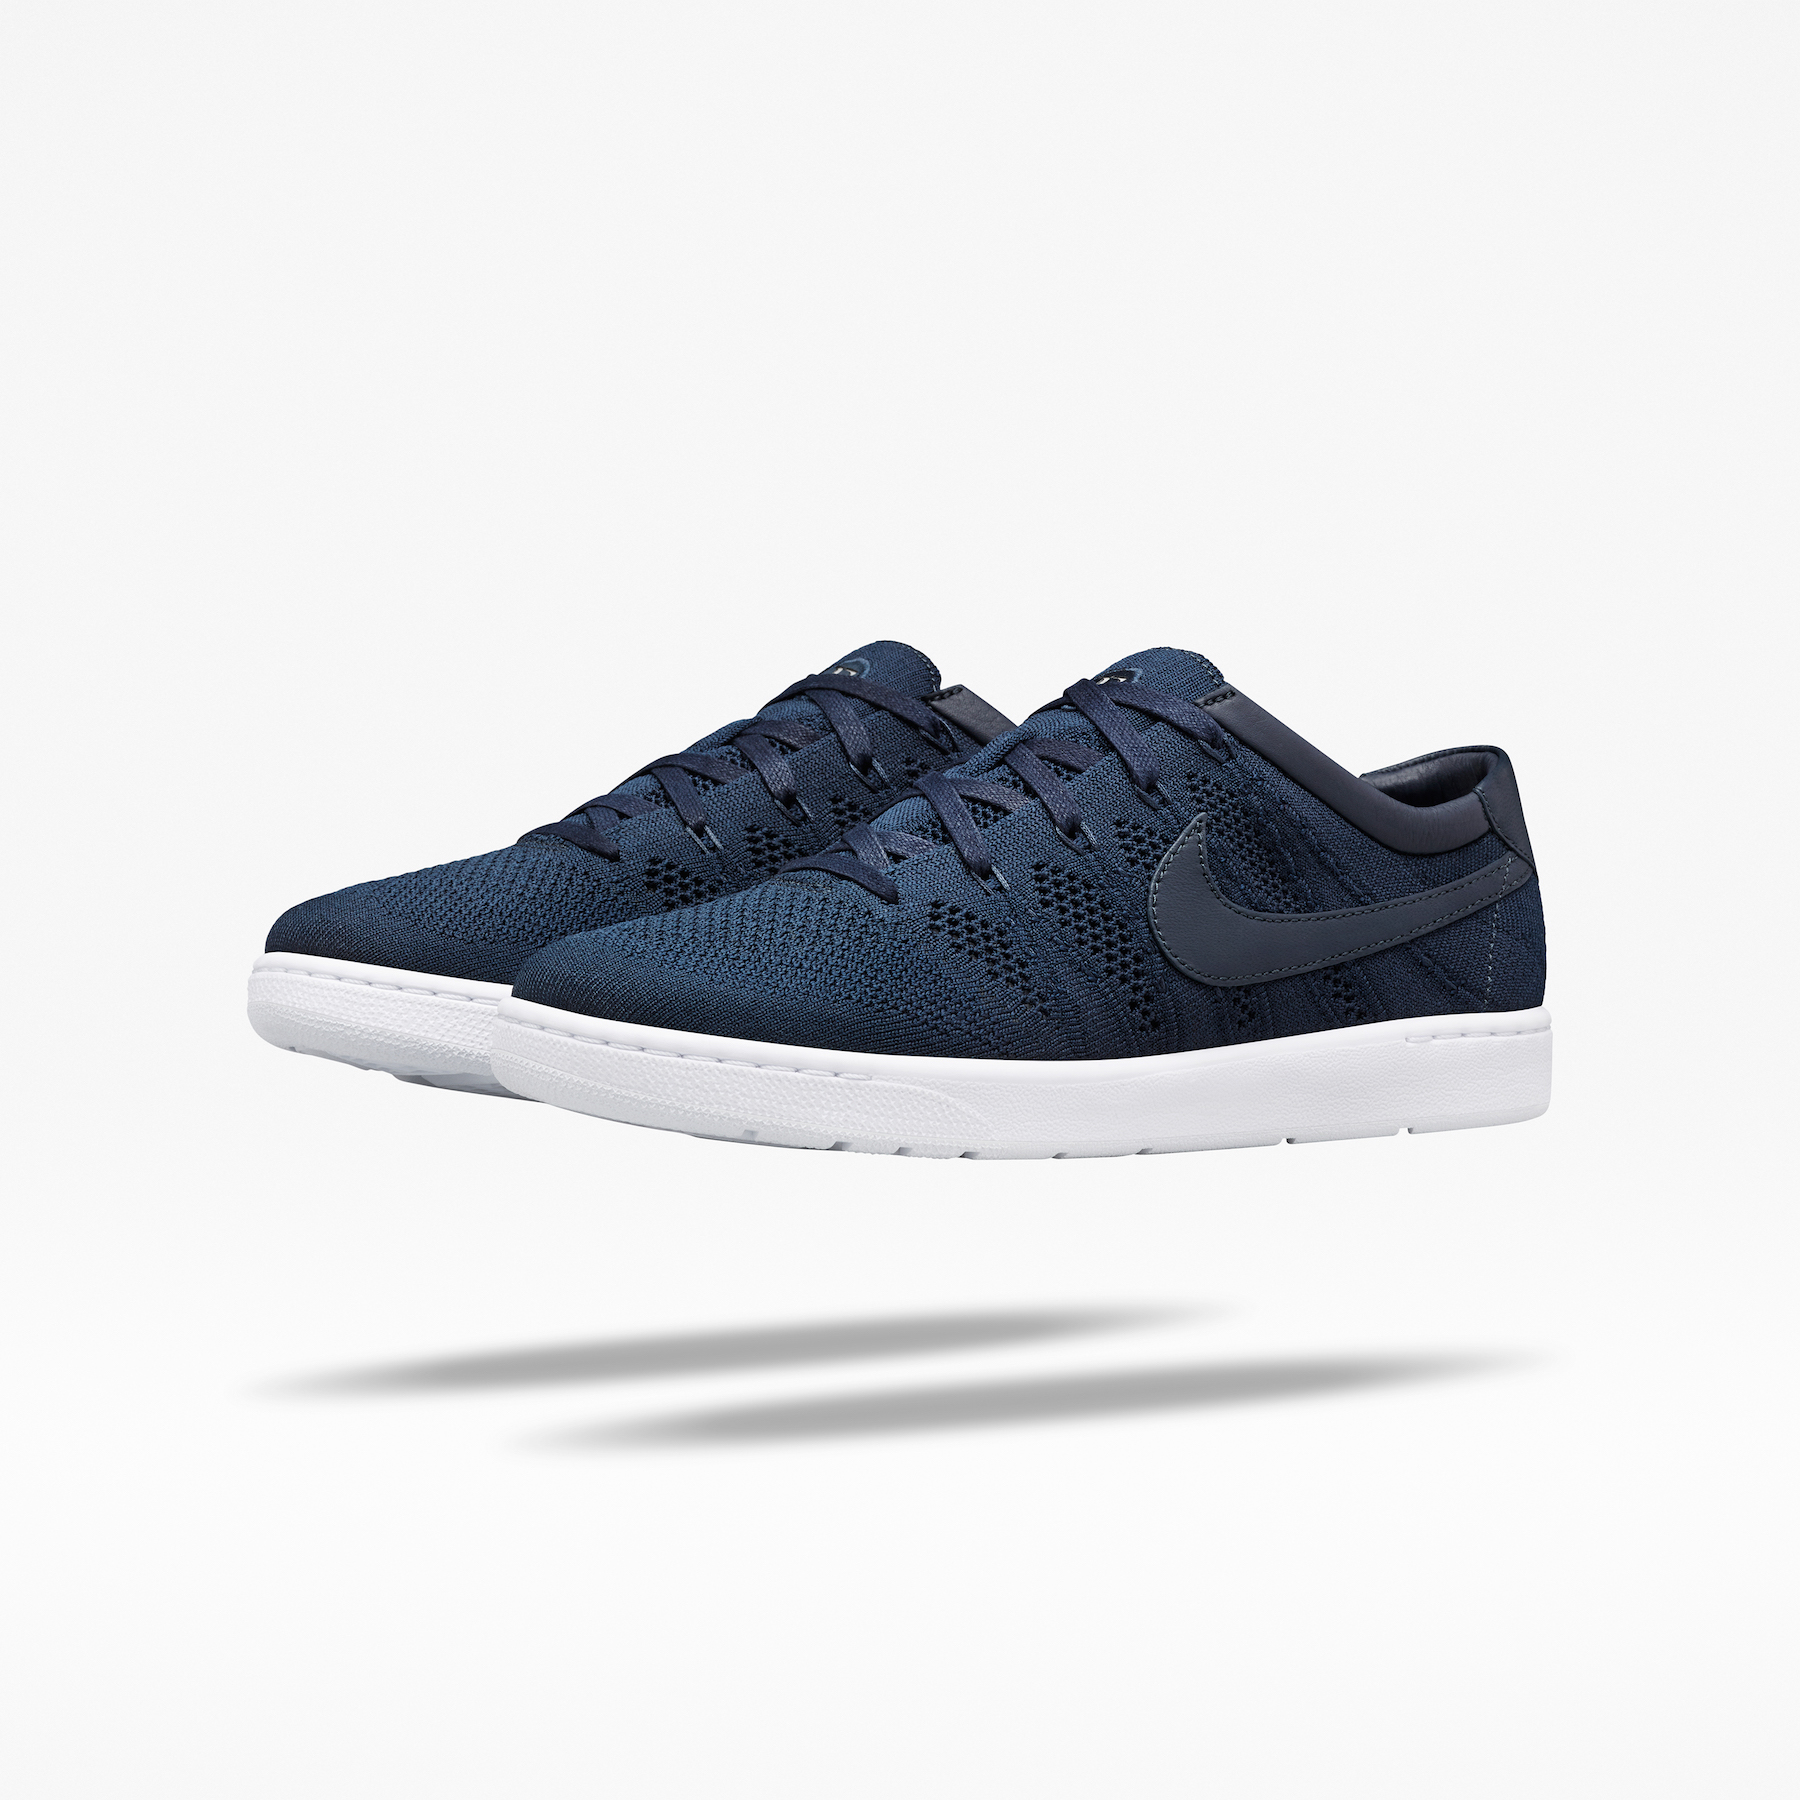 nikecourt x roger federer collection 6